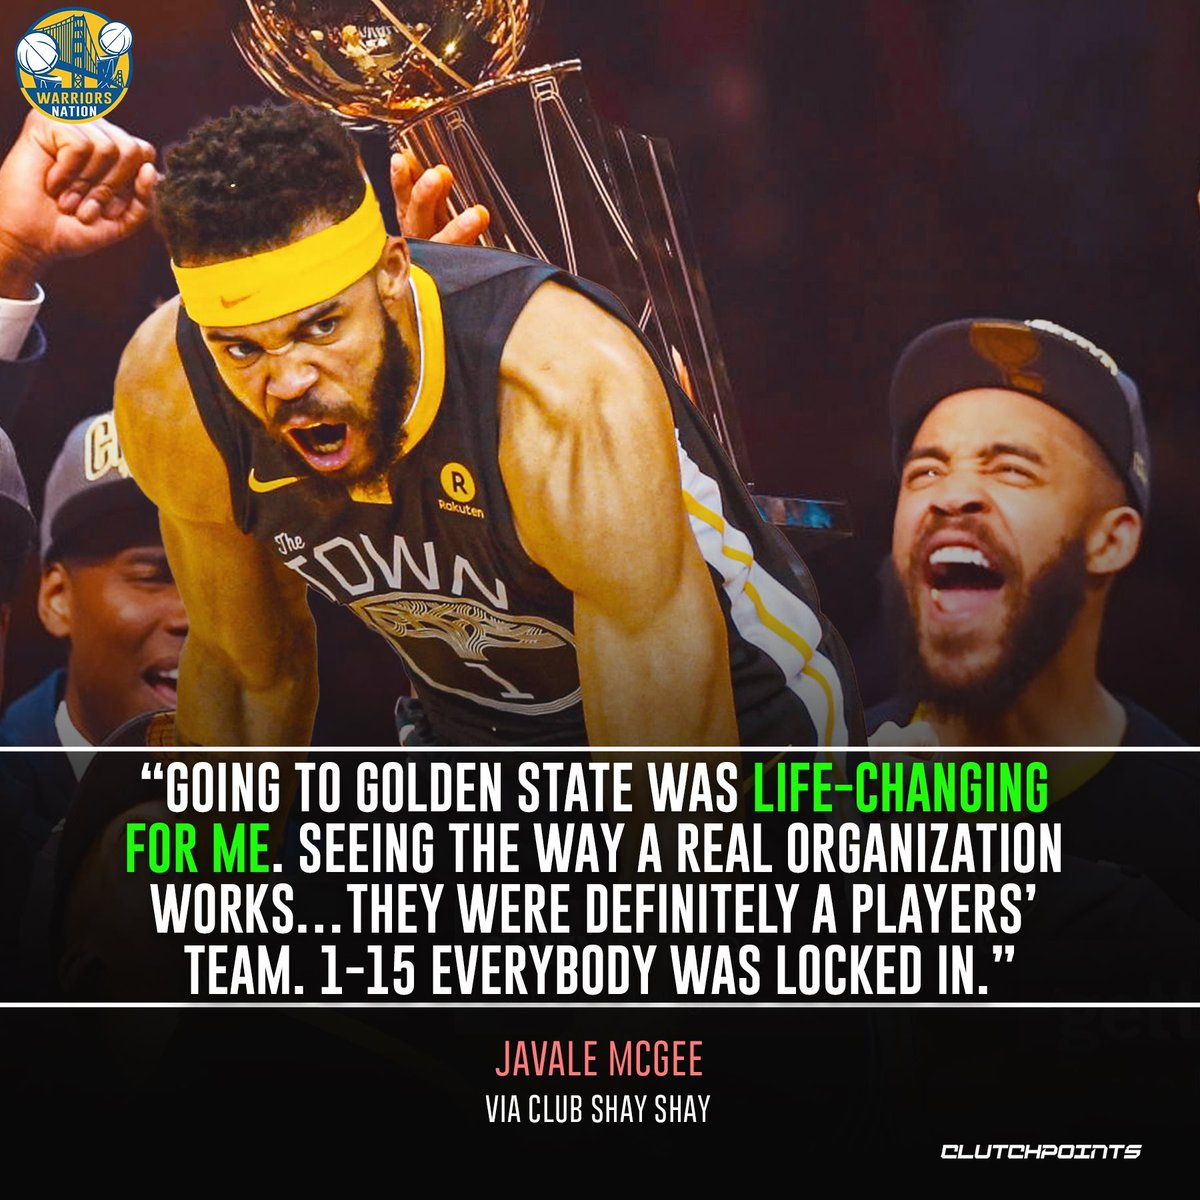 Javale McGee's 2 championship rings with our squad can attest to that 🙌